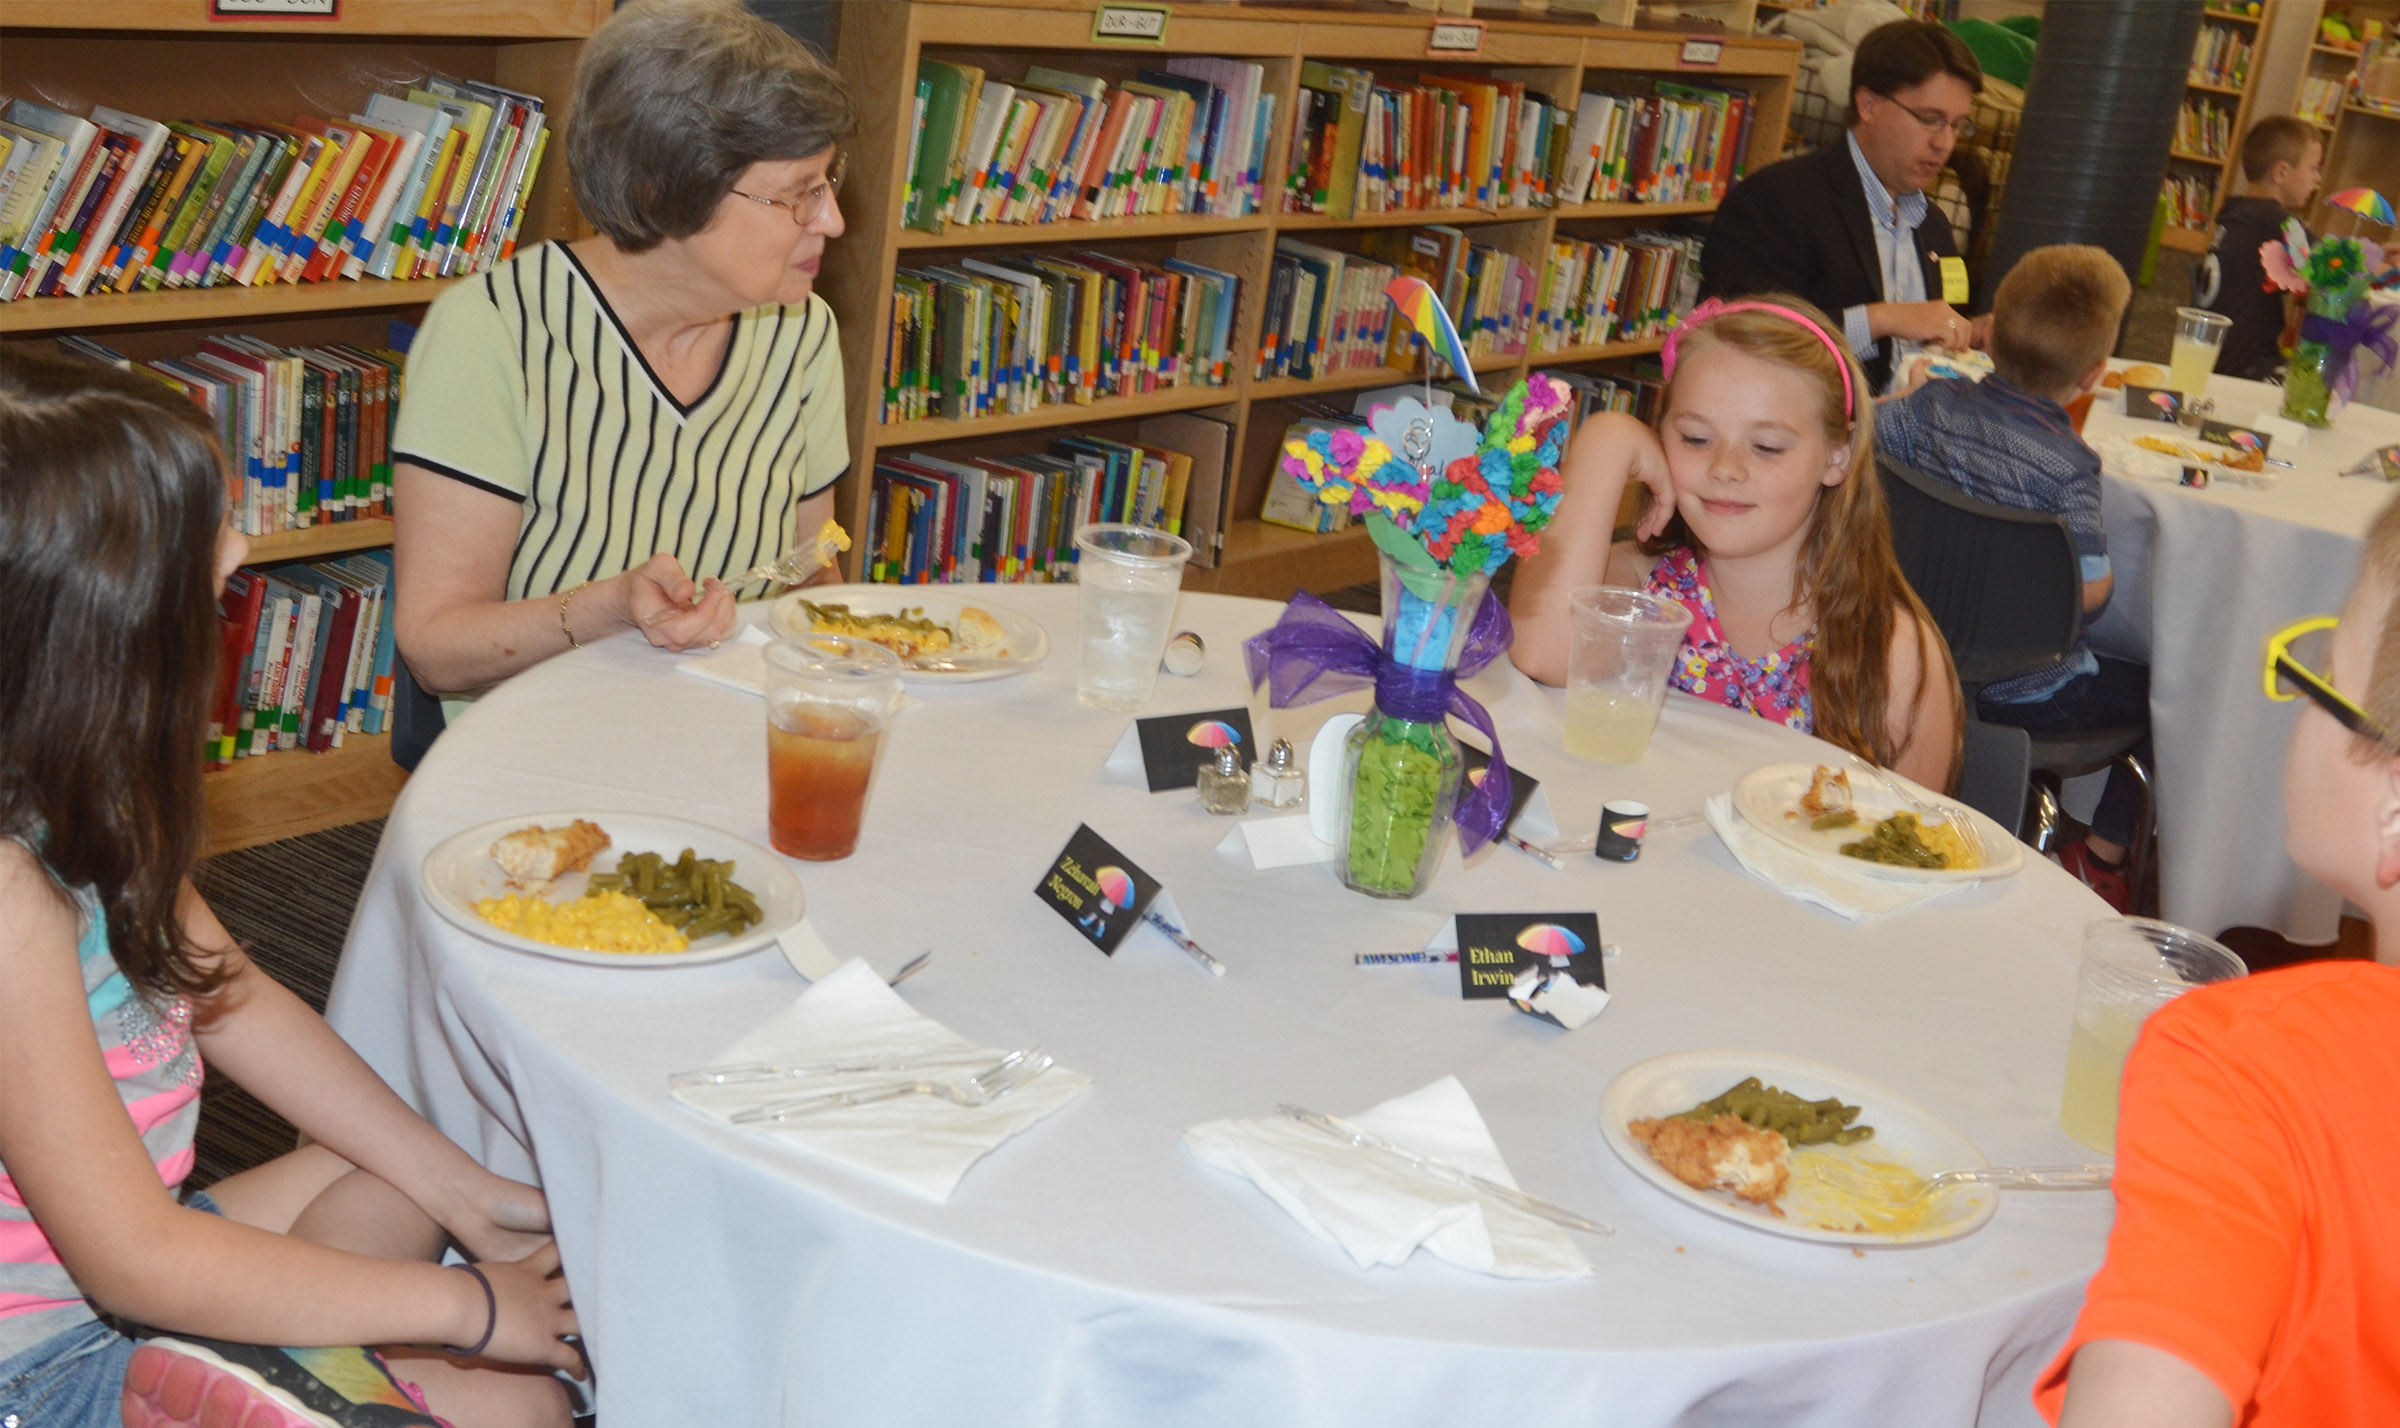 Local author Diana Derringer has lunch with, from left, CES third-grader Zehavah Negron, second-grader Caleigh Underwood and third-grader Ethan Irwin.